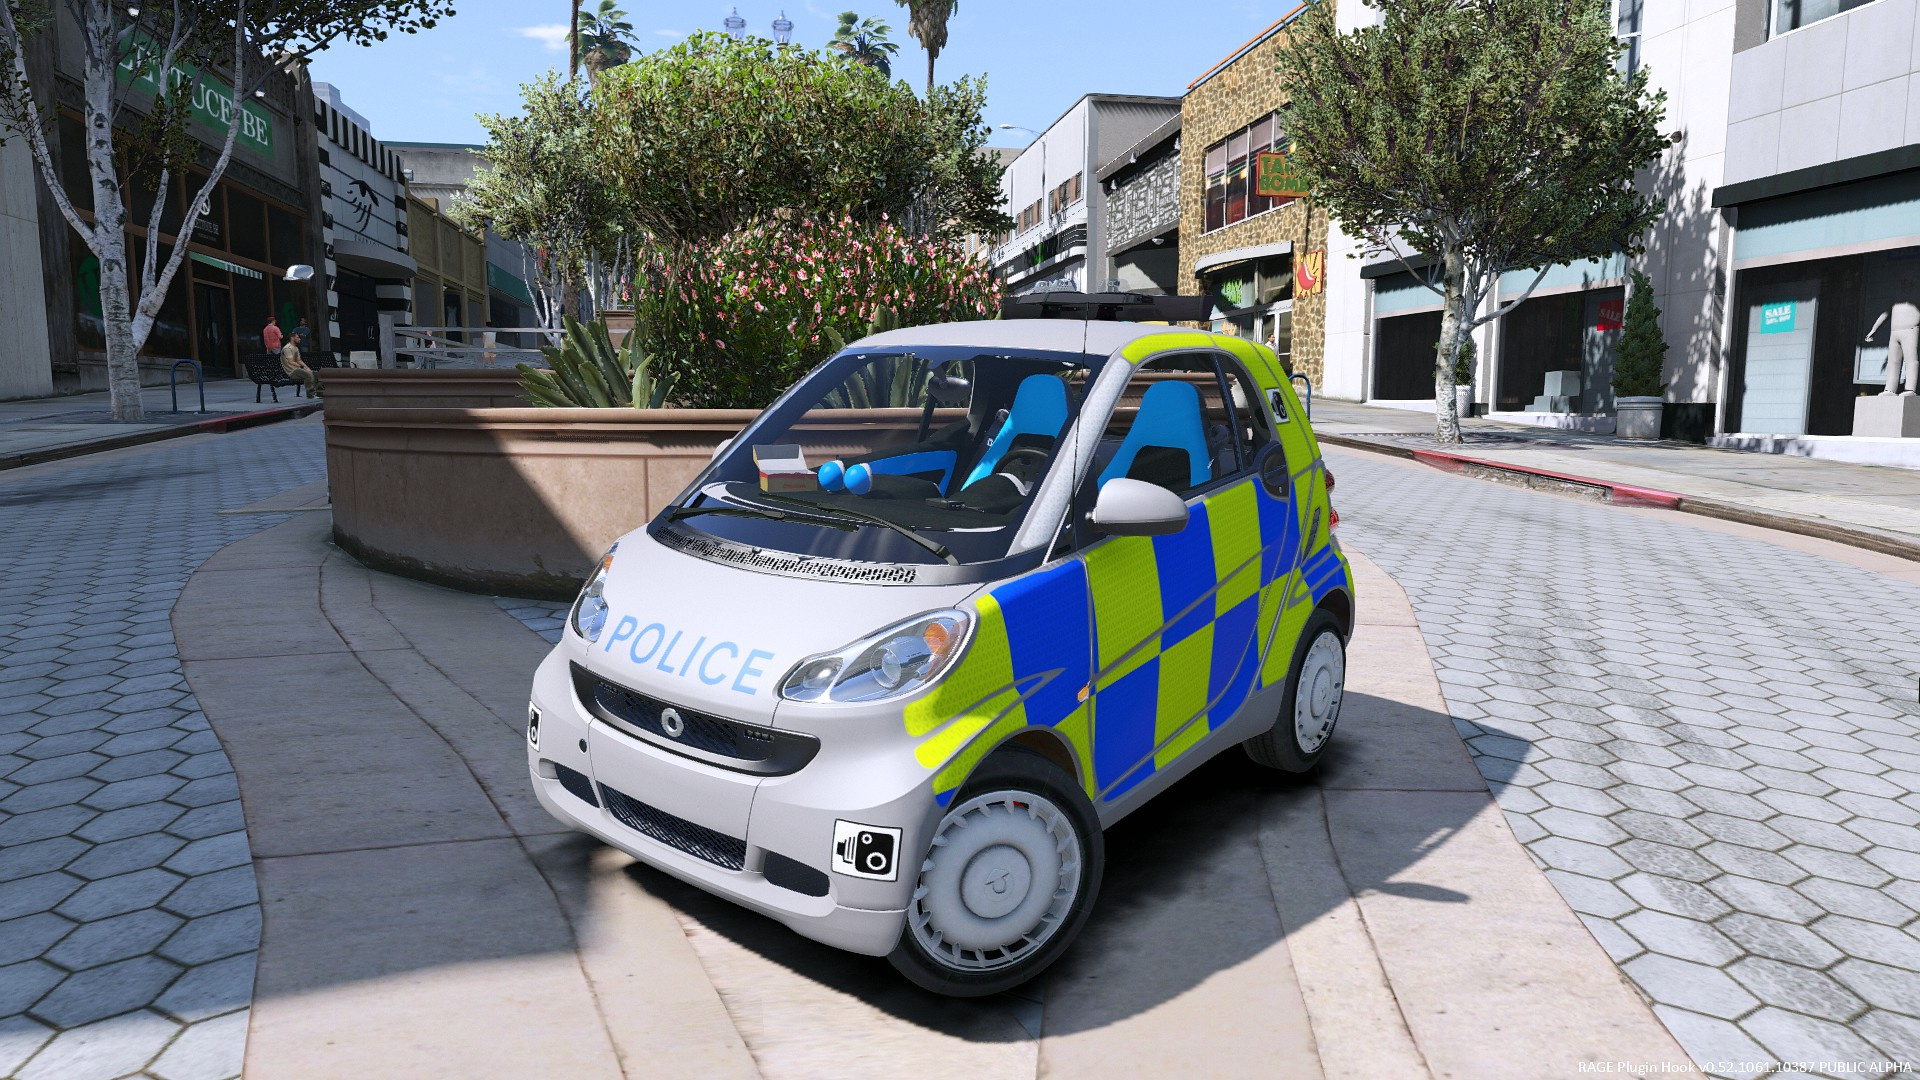 Various UK police skins for Smart Car - GTA5-Mods com